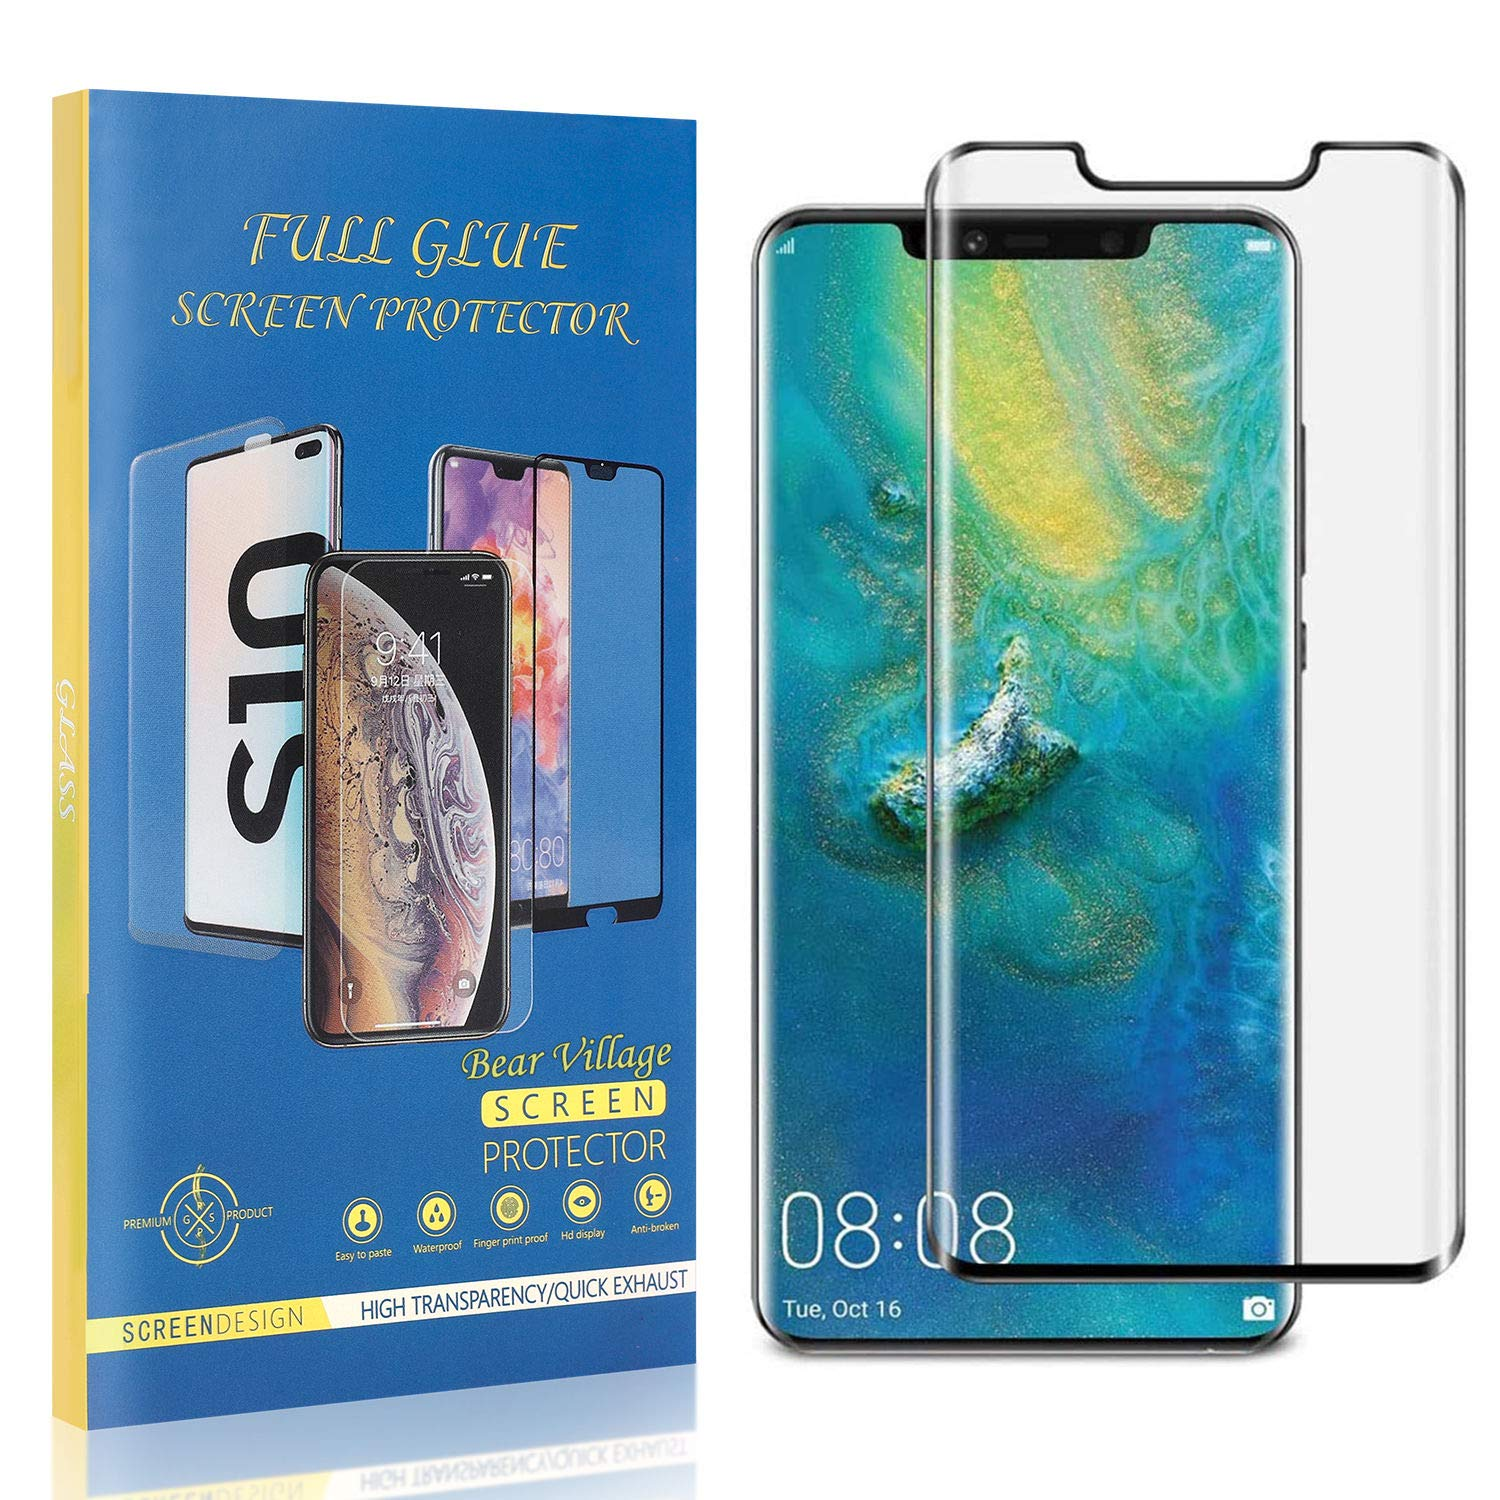 HD Tempered Glass Screen Protector Film for Huawei Mate 20 Pro 1 Pack Ultra Thin Bubble Free Bear Village Screen Protector for Huawei Mate 20 Pro